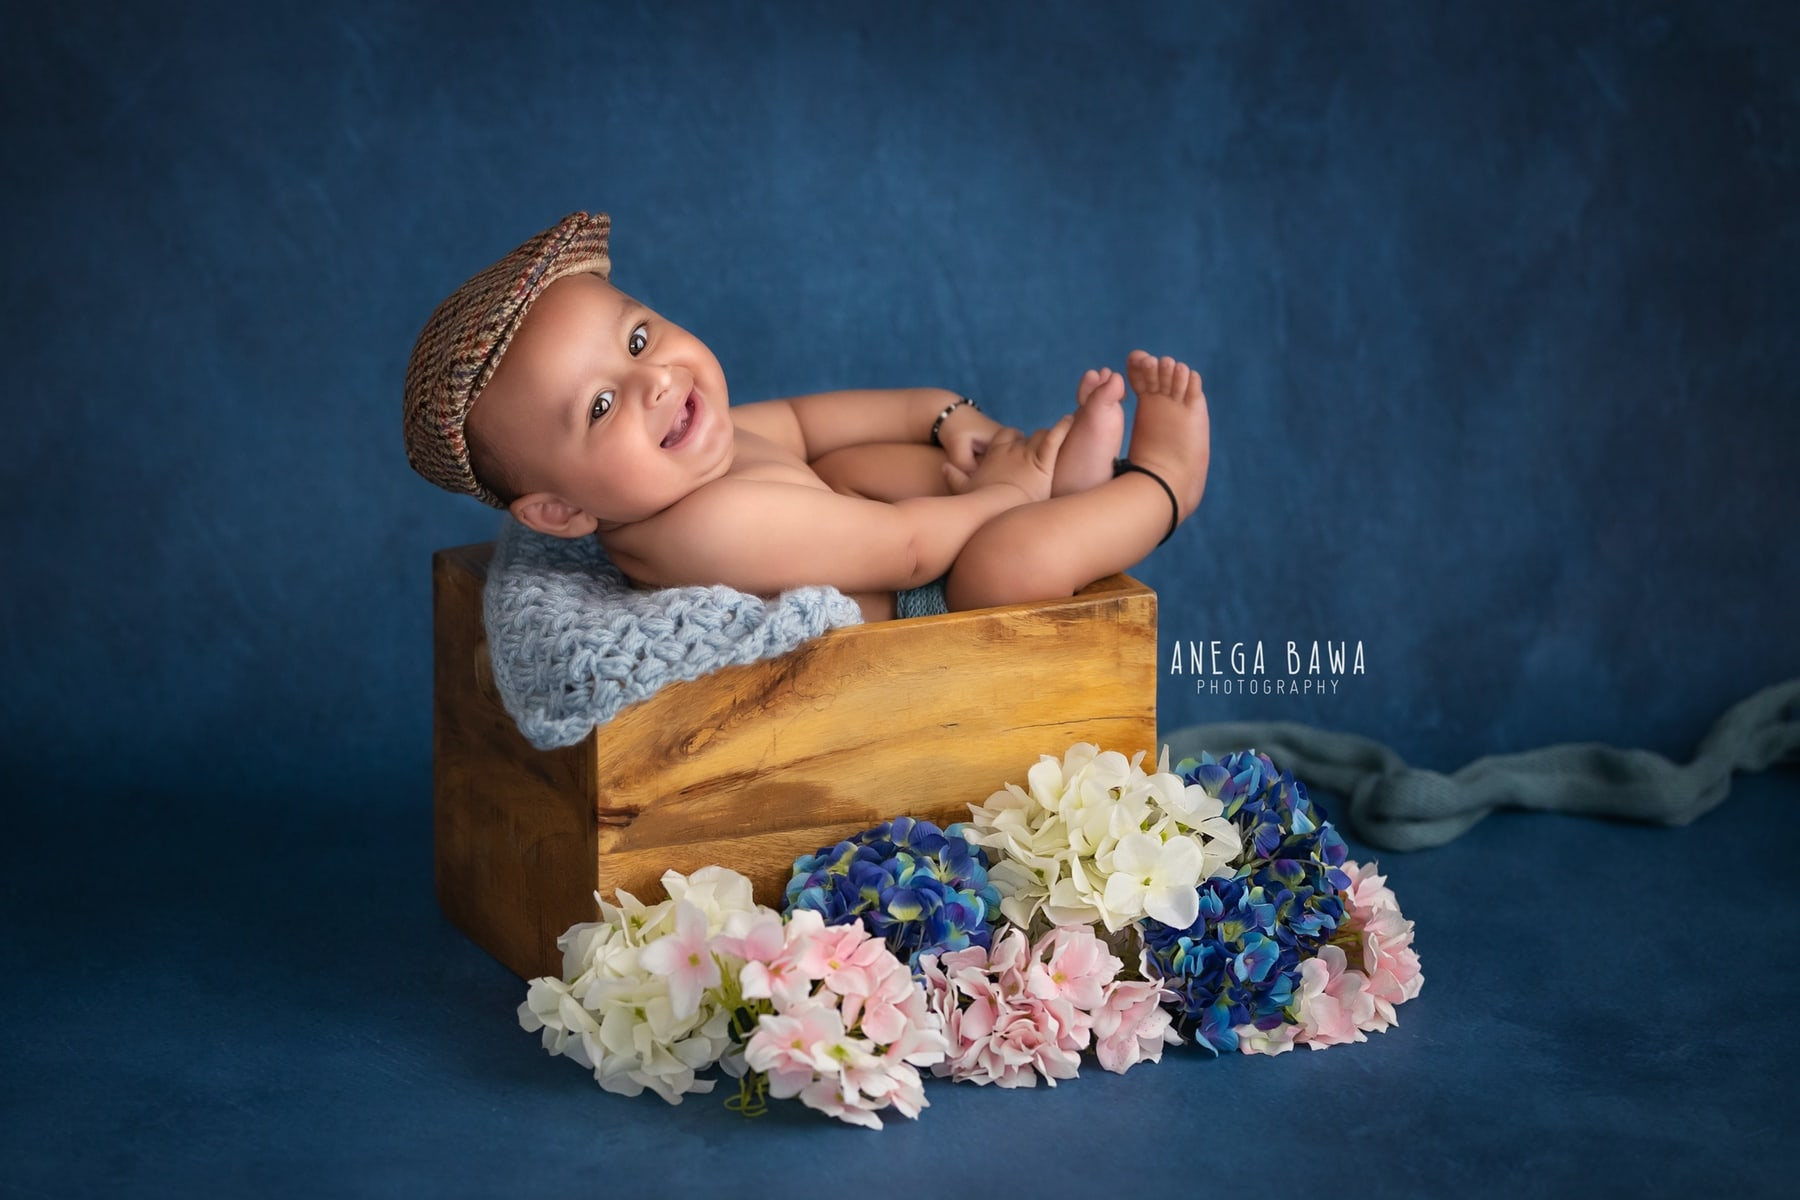 blue floral baby photography delhi 4 months baby boy photoshoot gurgaon anega bawa